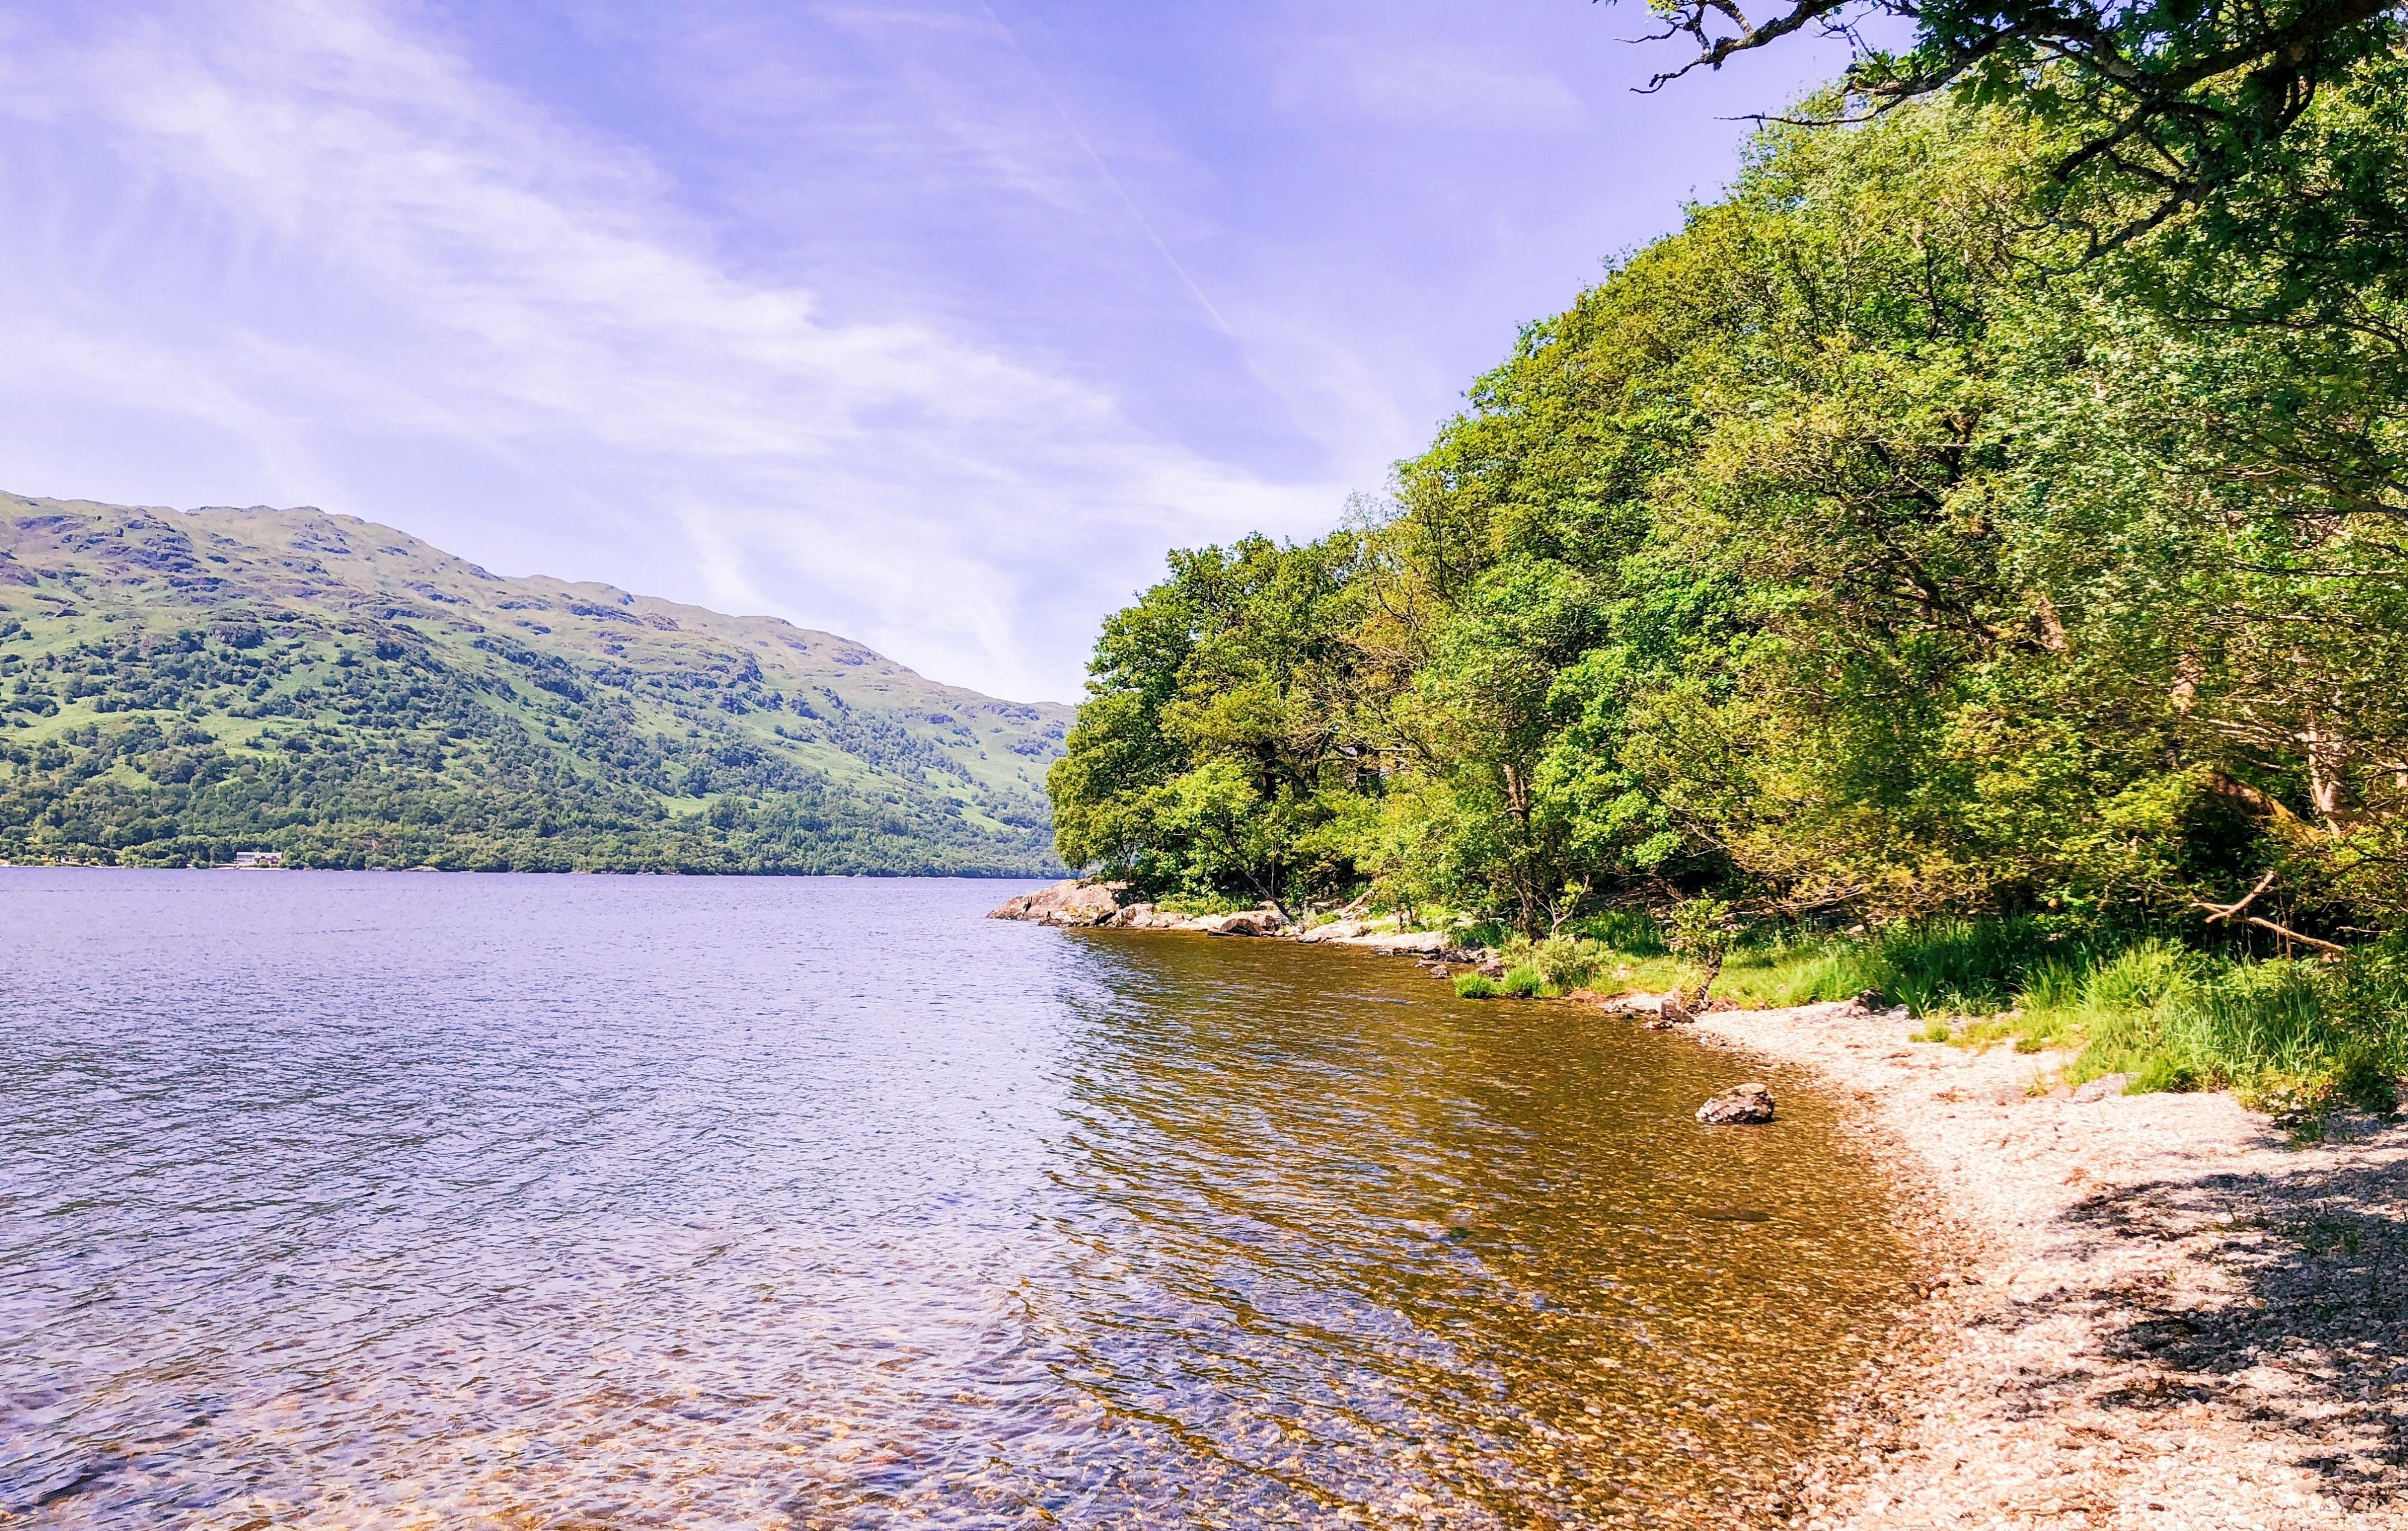 Hiken langs de Loch Lomond